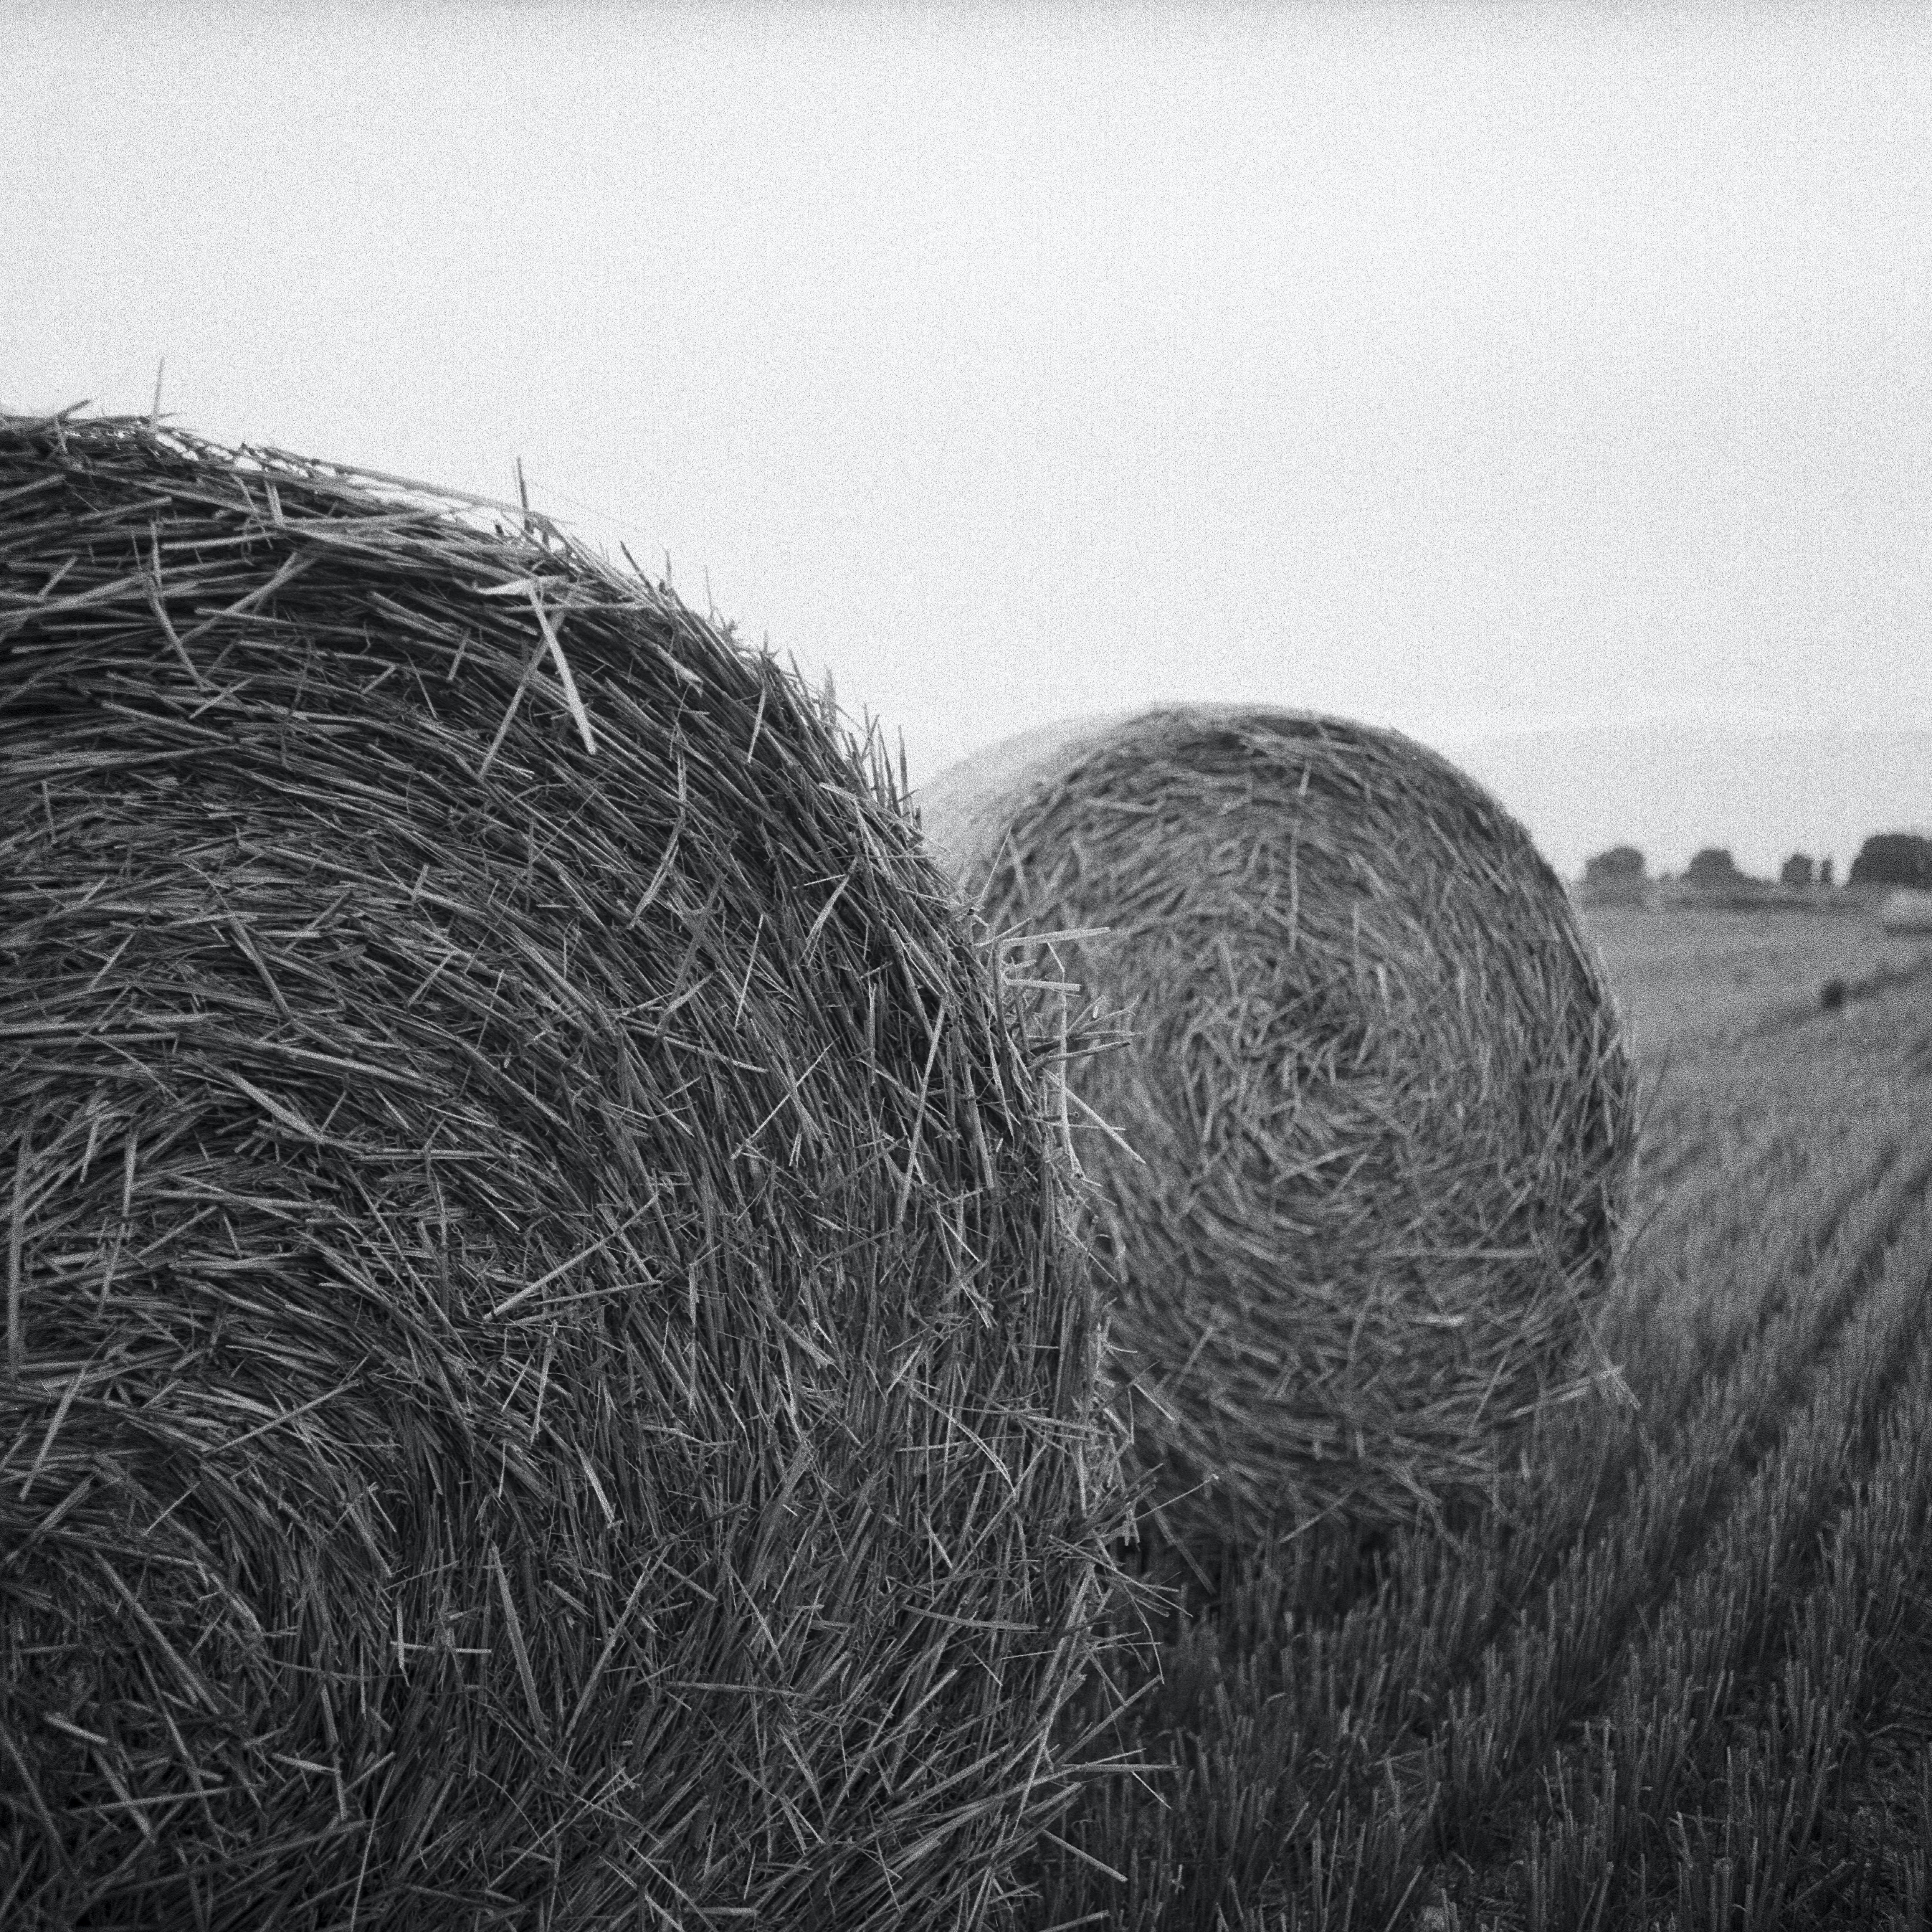 Gray Scale Photo of Haystack on Field